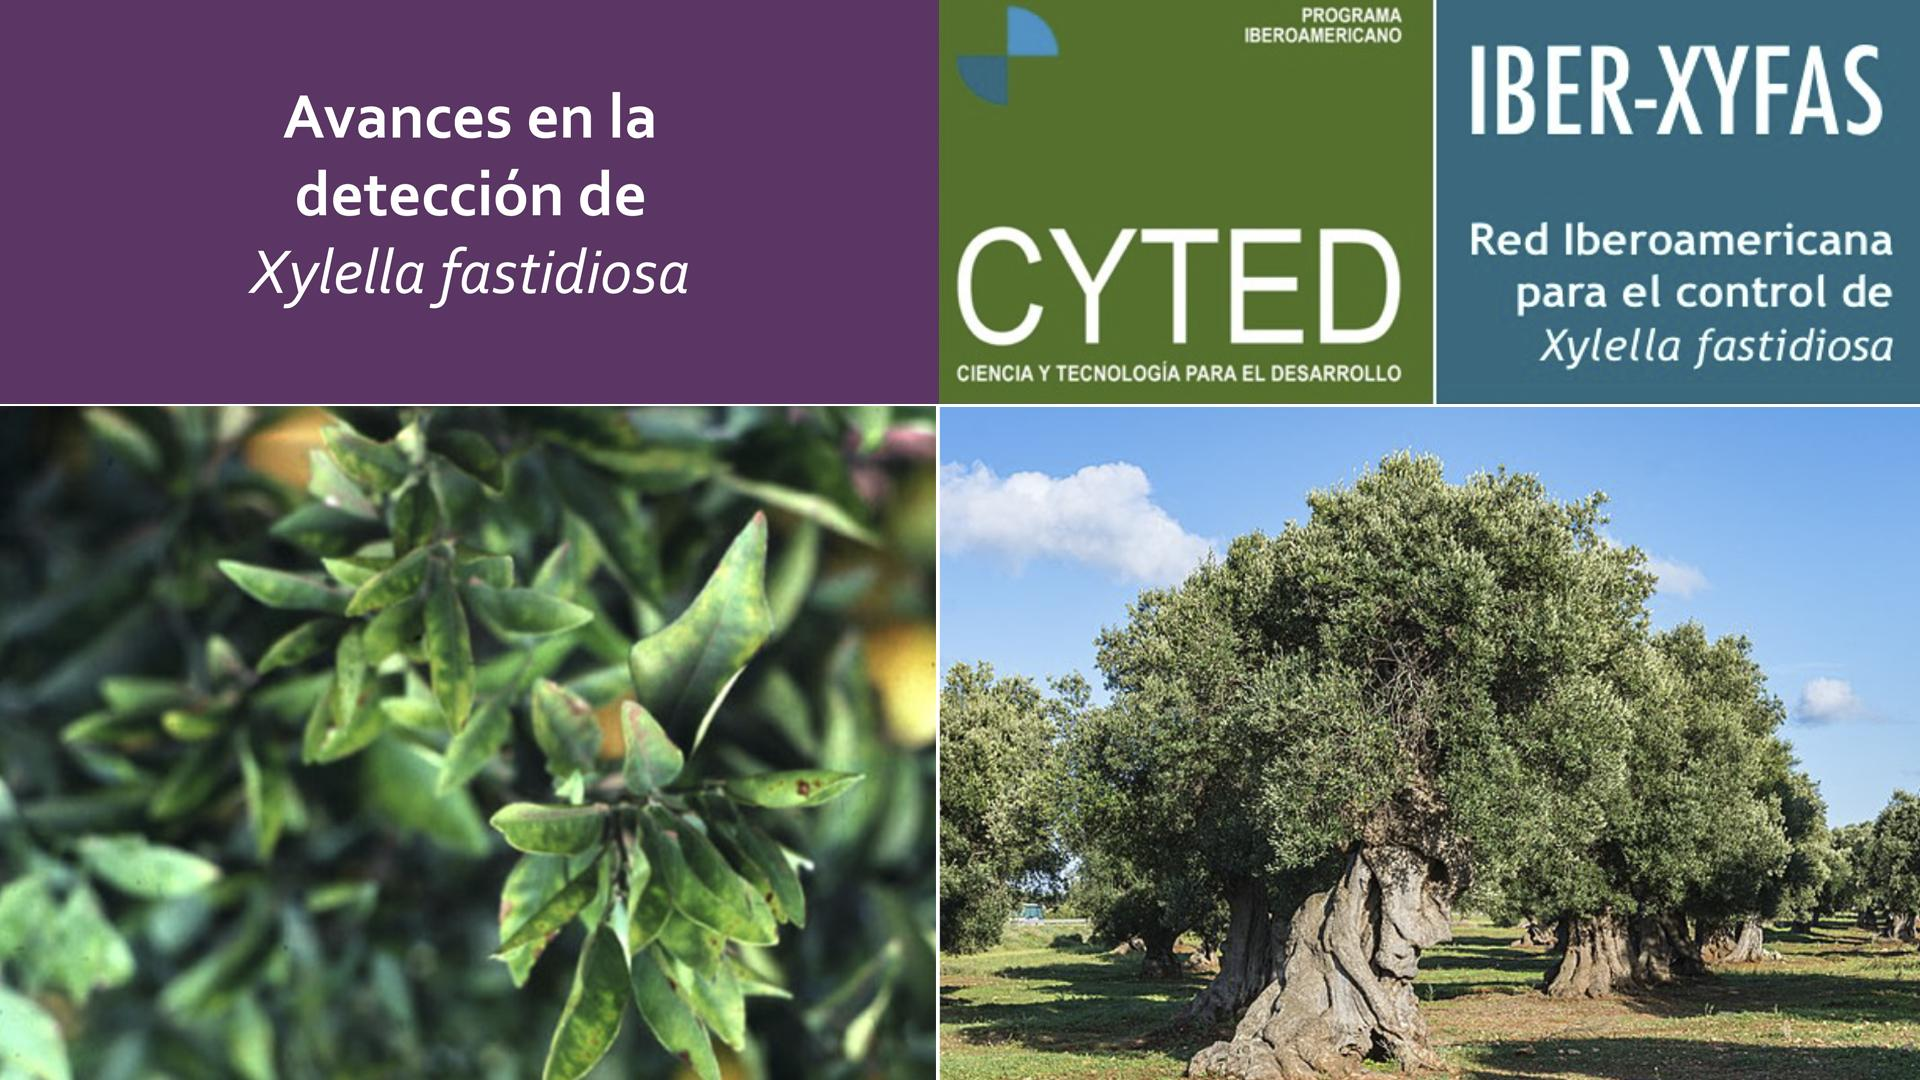 International Day: Advances in the detection of 'Xylella fastidiosa'